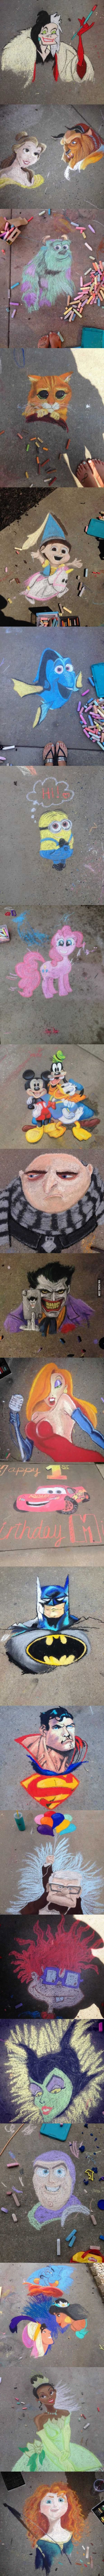 Amazing sidewalk chalk art